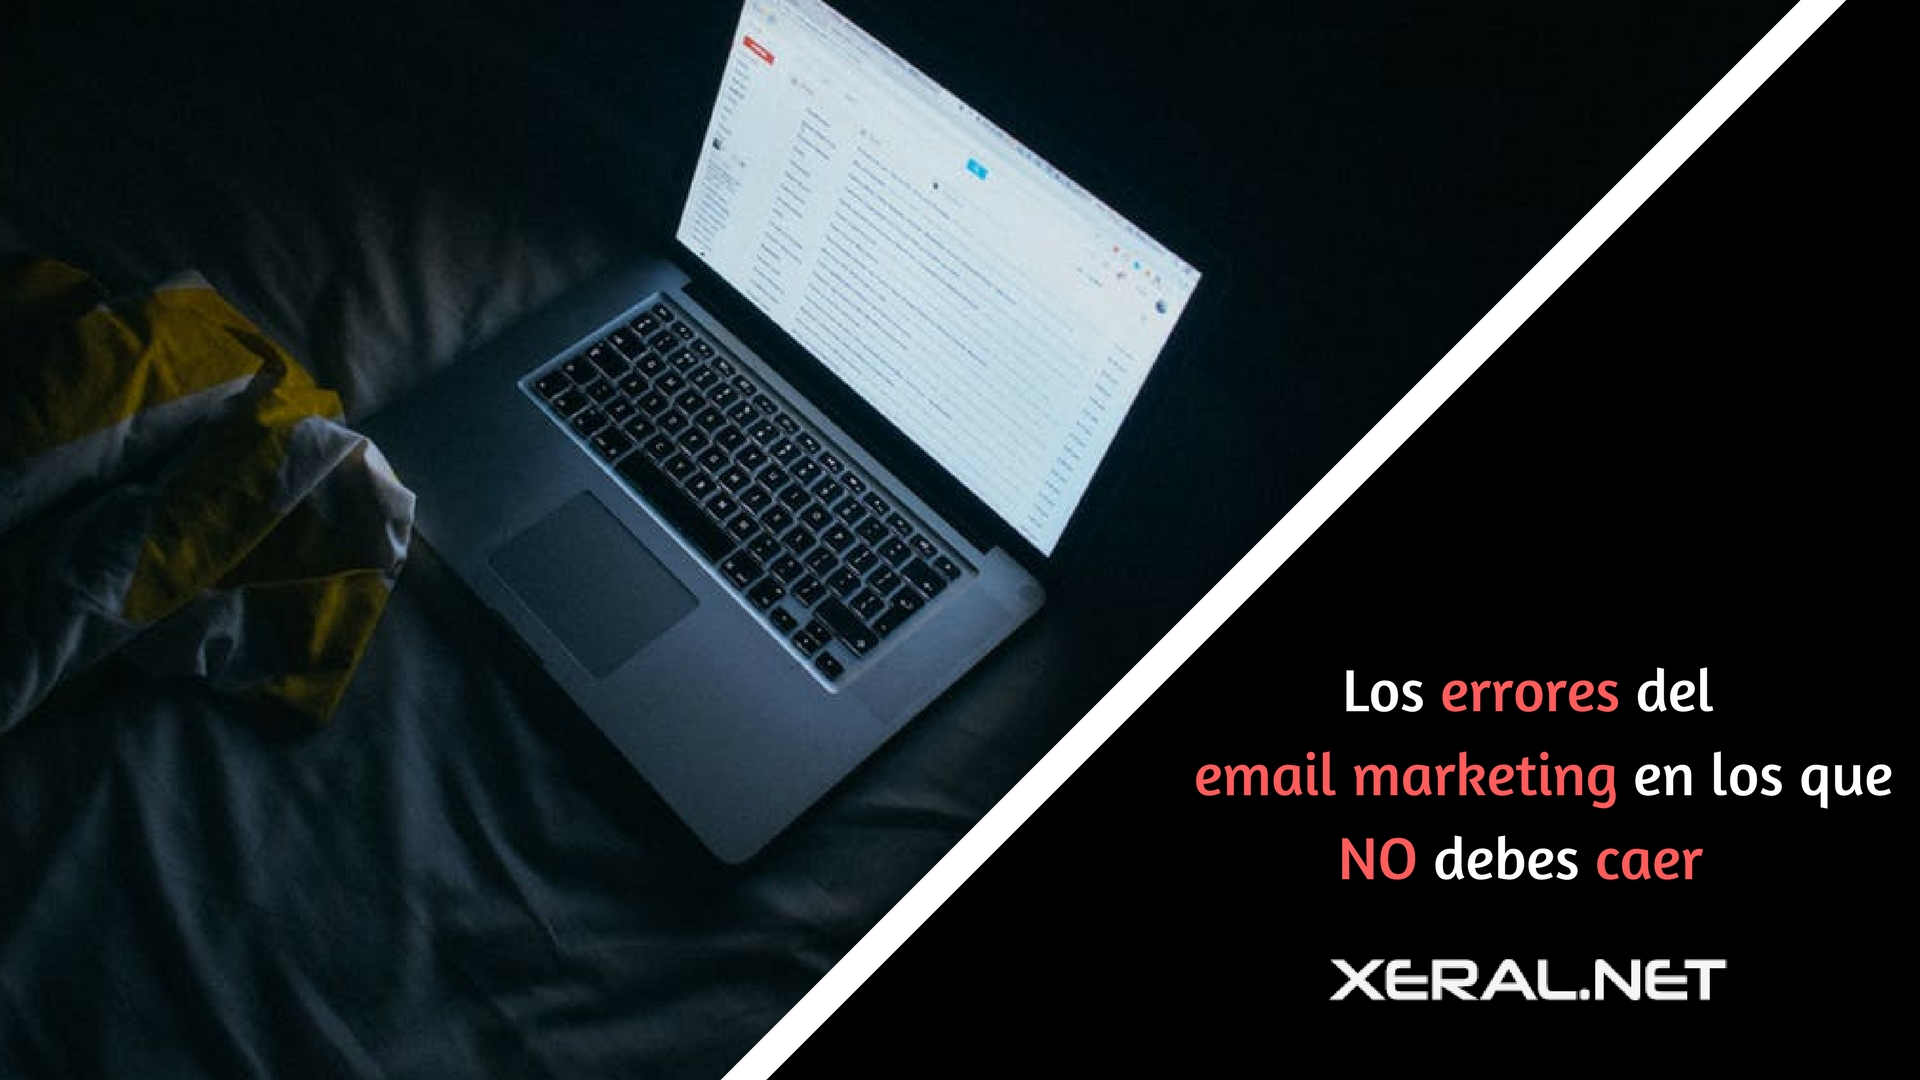 Los errores del email marketing en los que NO debes caer